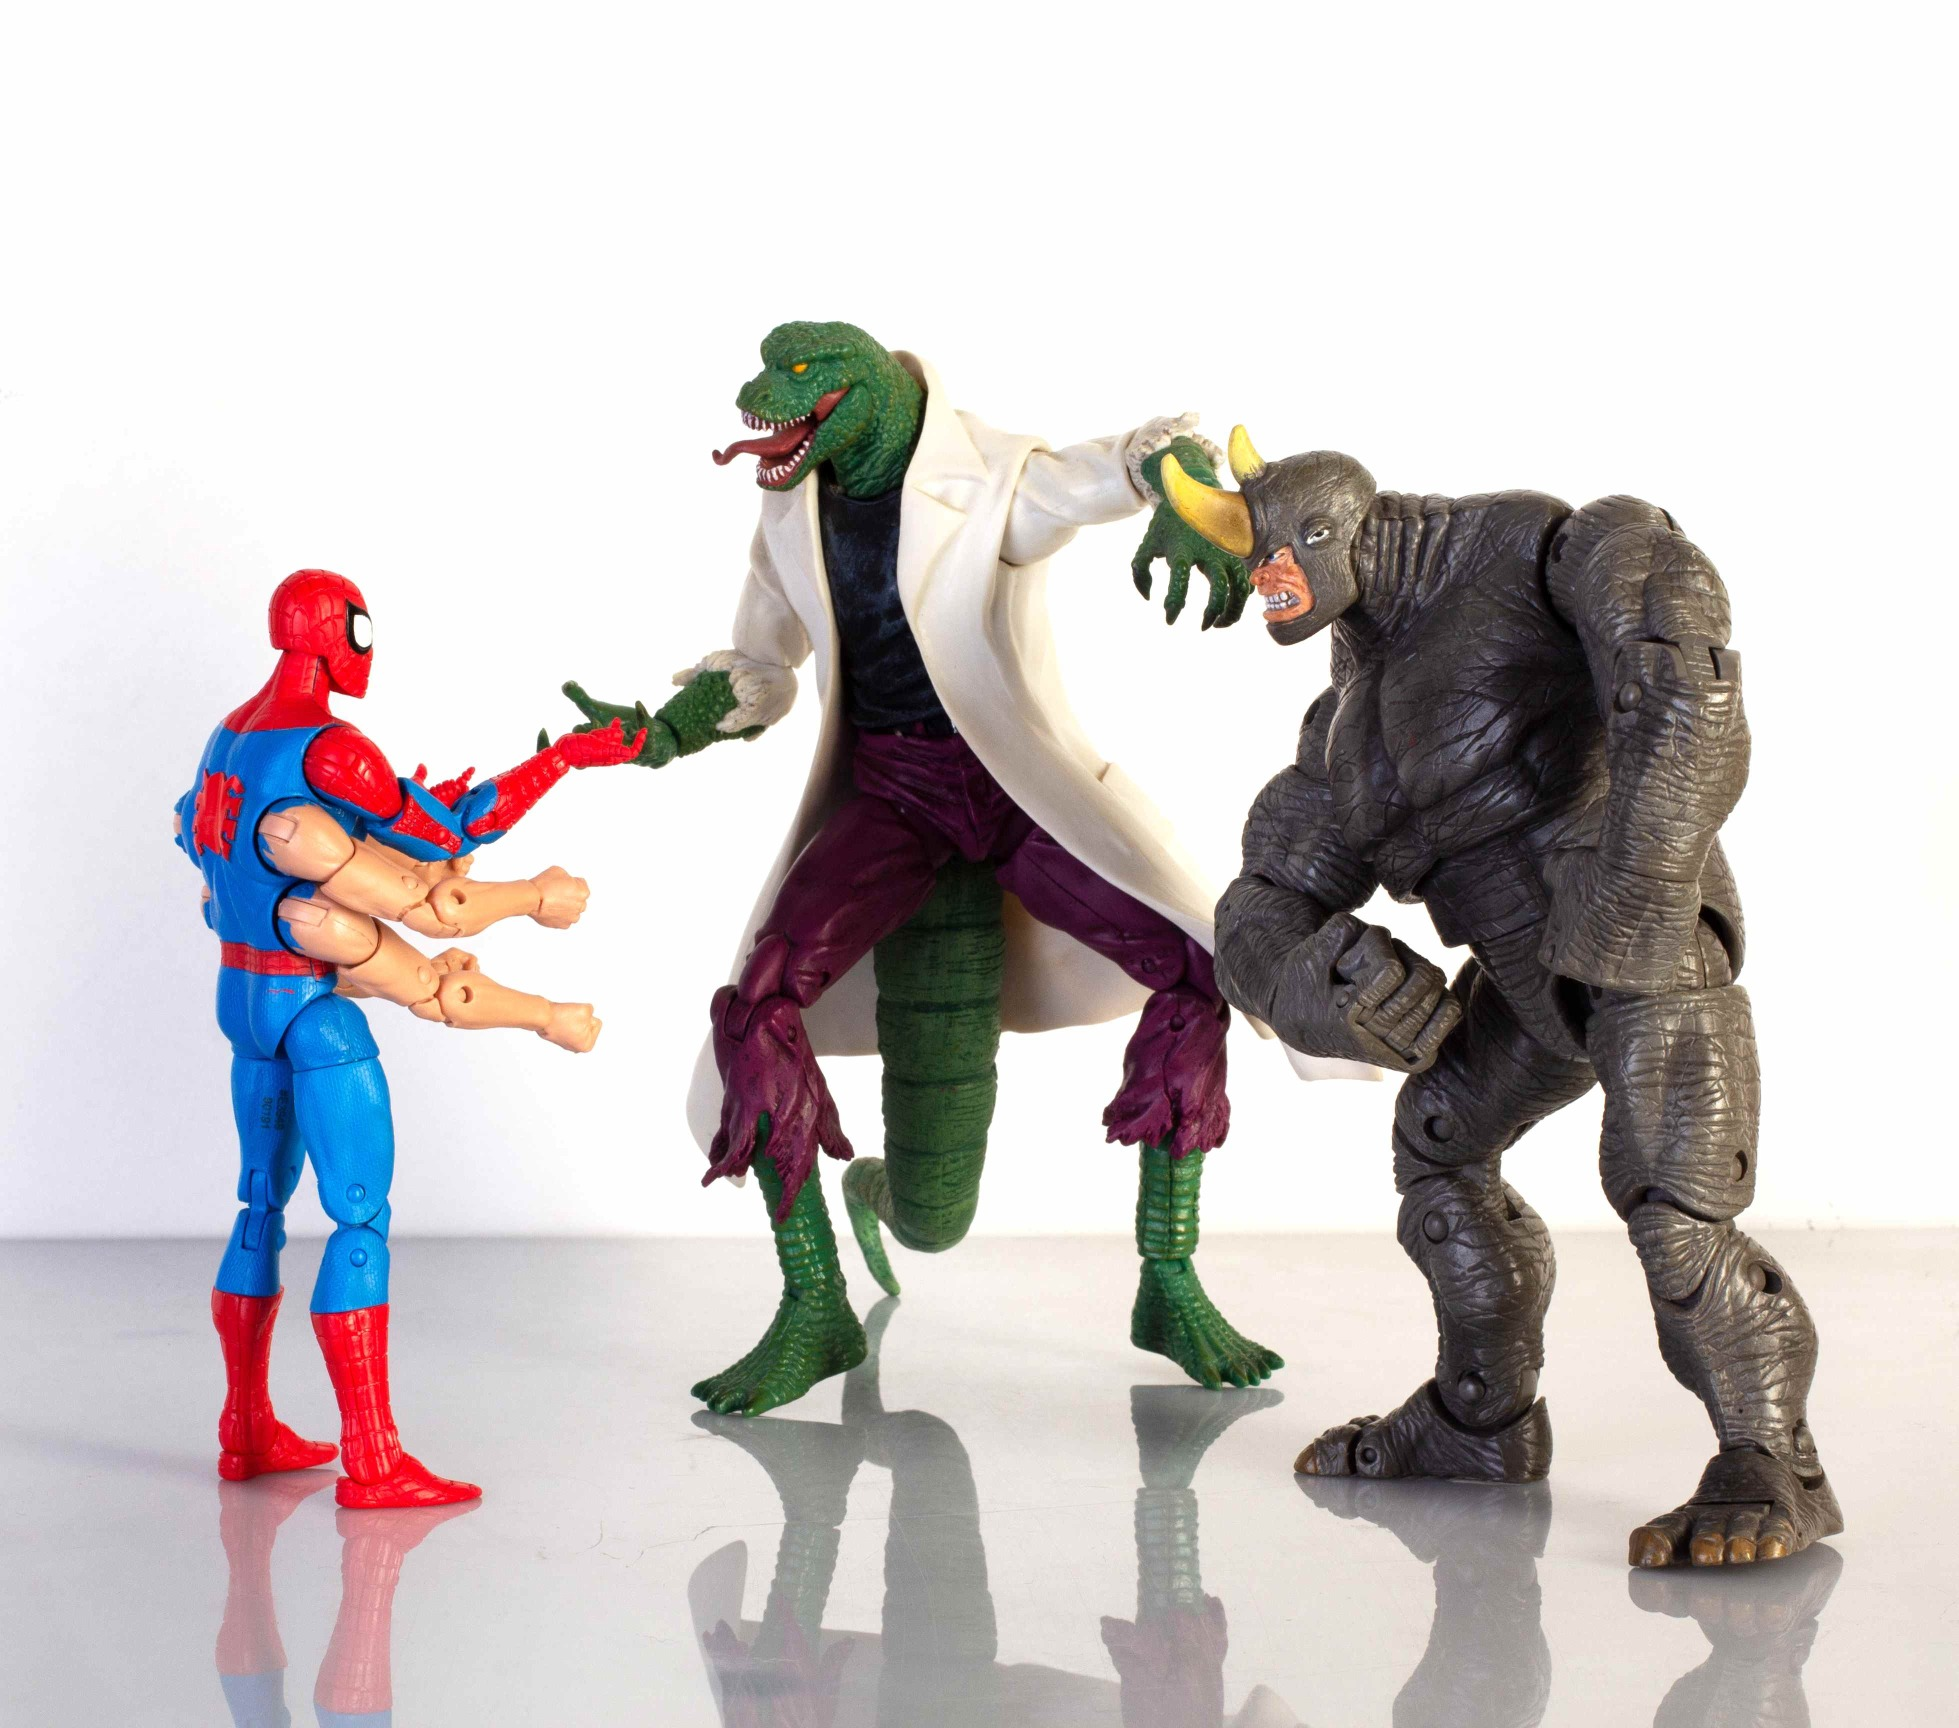 Marvel Legends Sixarms Spiderman vs. Marvel Select Lizard i Marvel Legends Rhino.